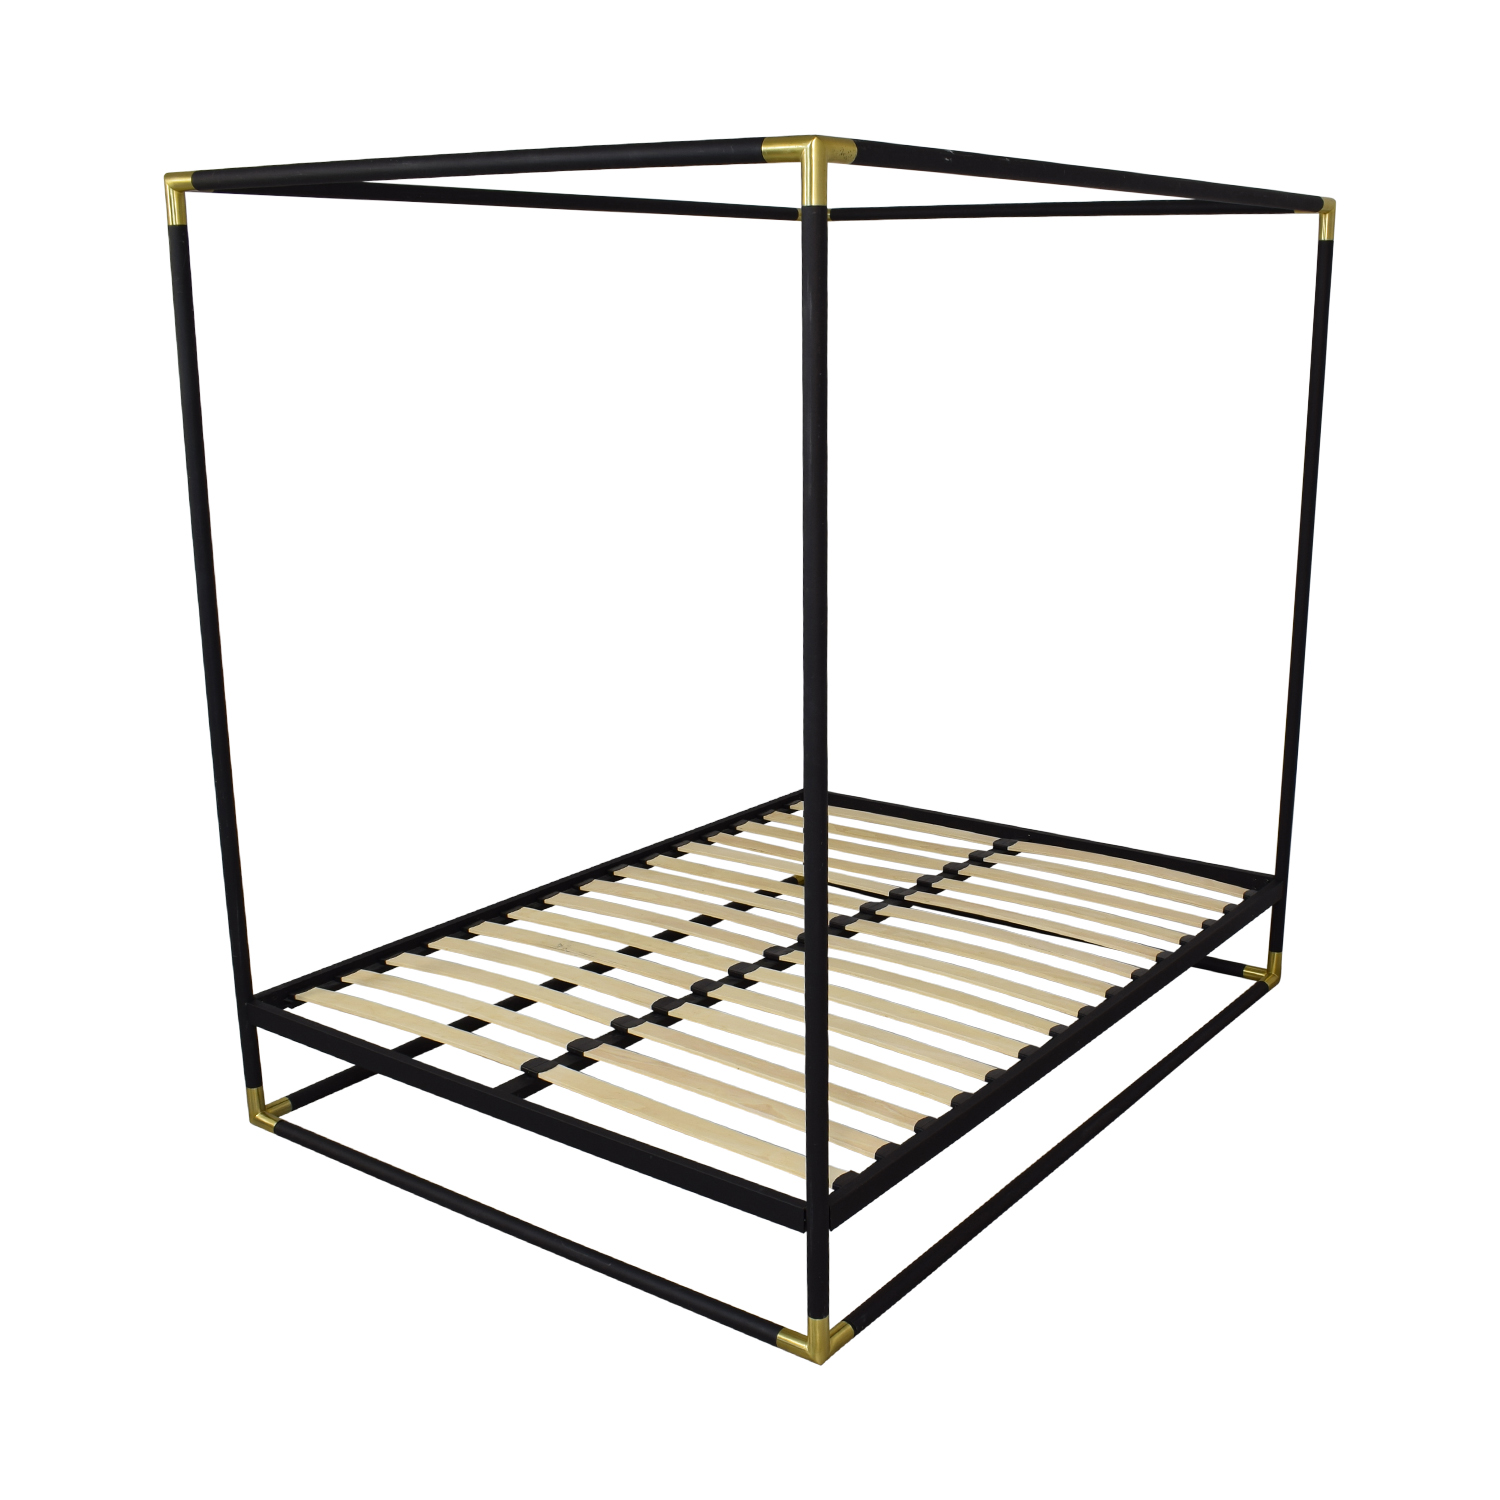 buy CB2 CB2 Frame Canopy Queen Bed online